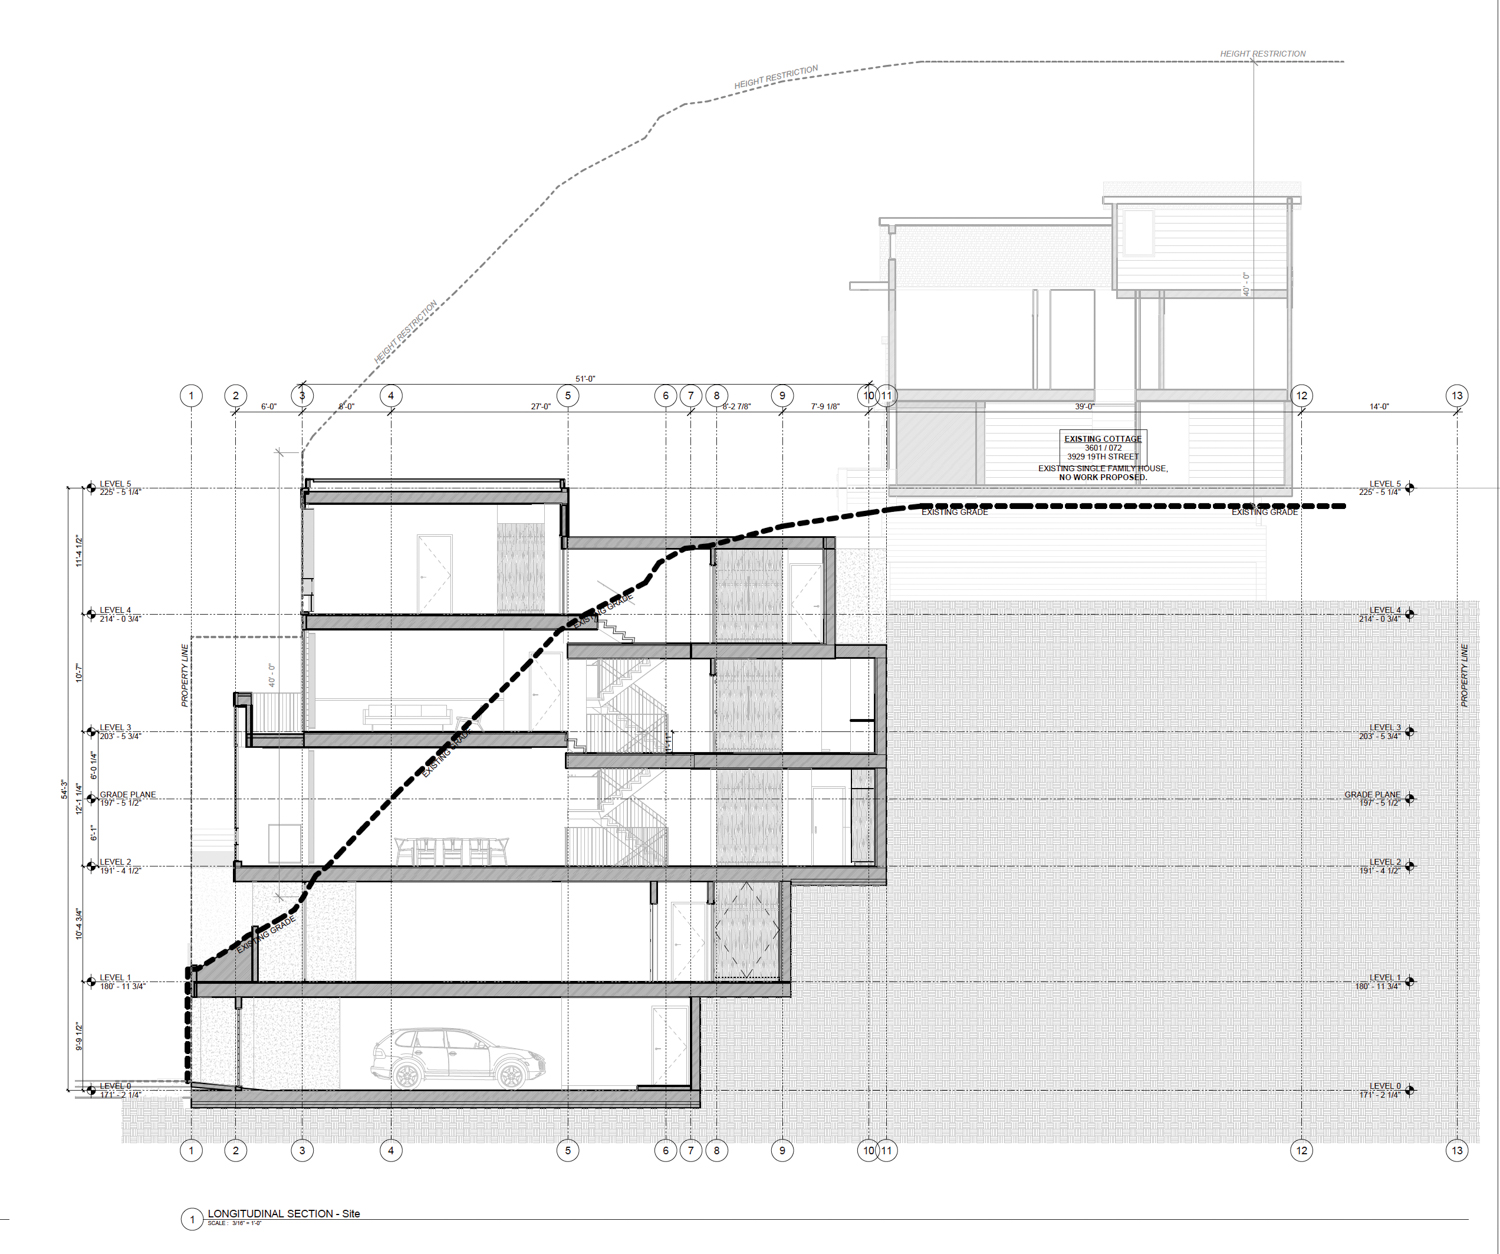 3929 19th Street longitudinal section, drawing by Studio 12